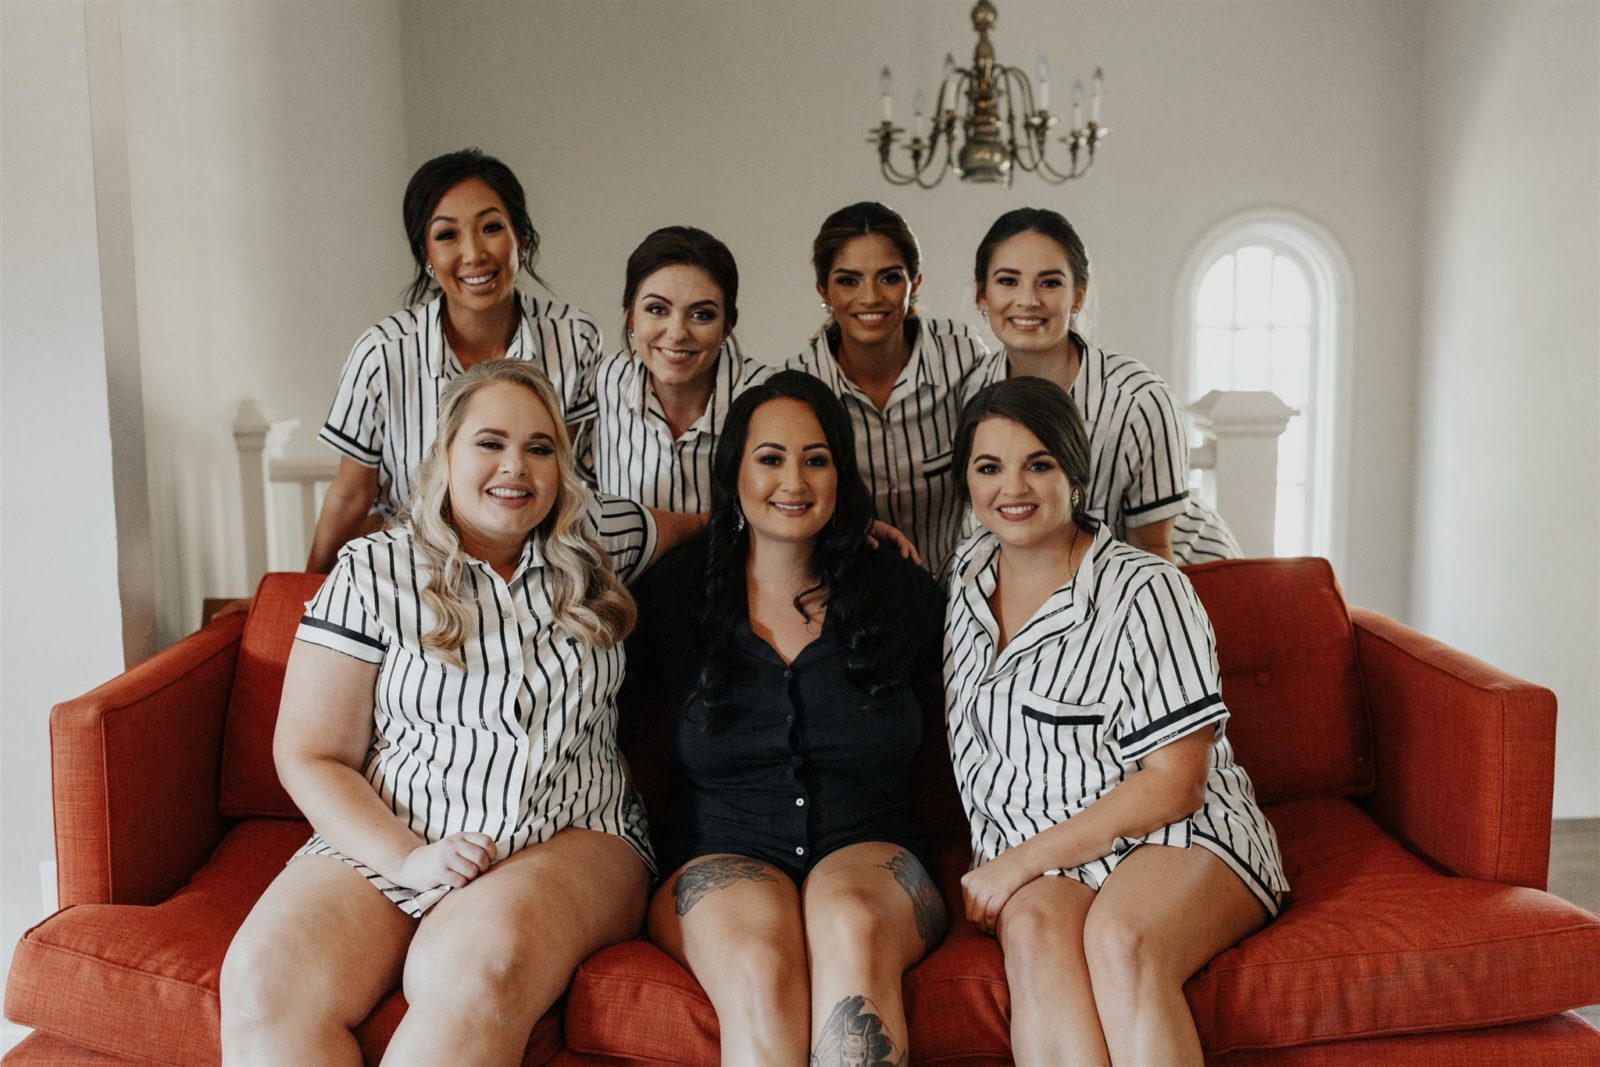 Black and White Bridesmaids Pajamas for Moody Wedding featured on Alexa Kay Events